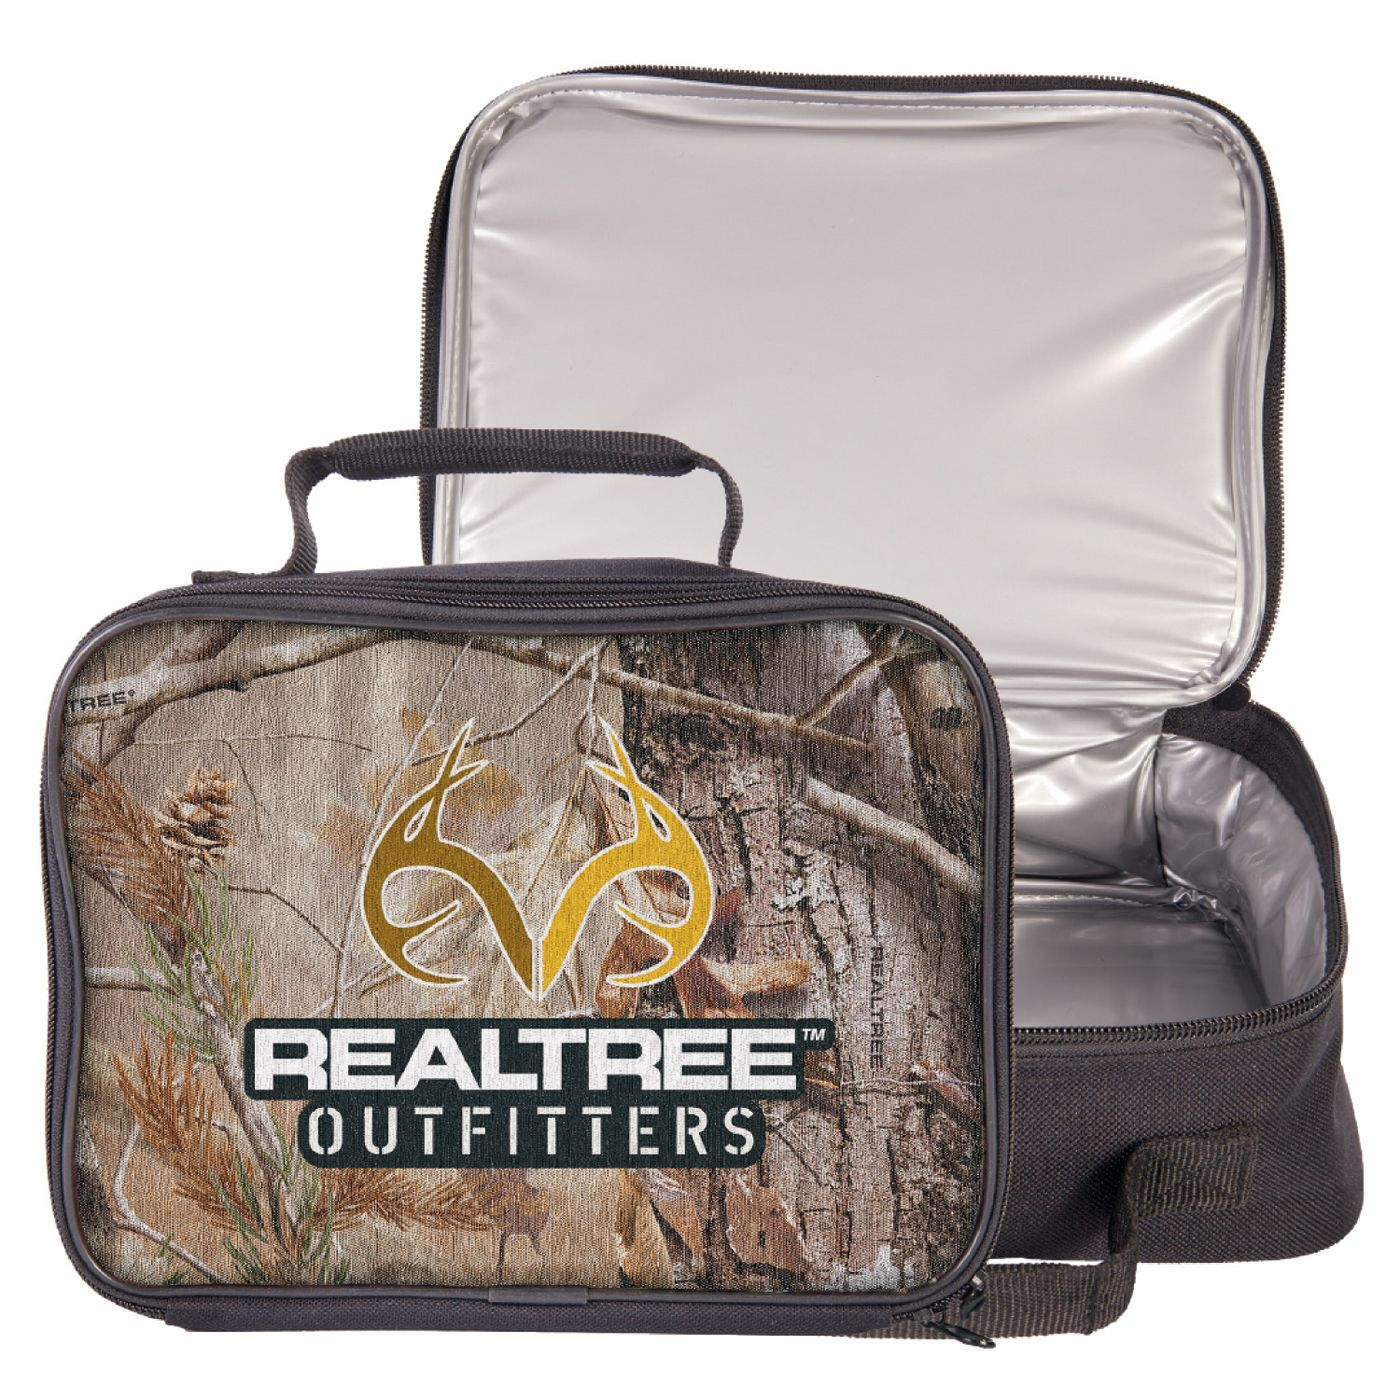 Realtree Insulated Lunch Box  shopko  3efe3c4325860